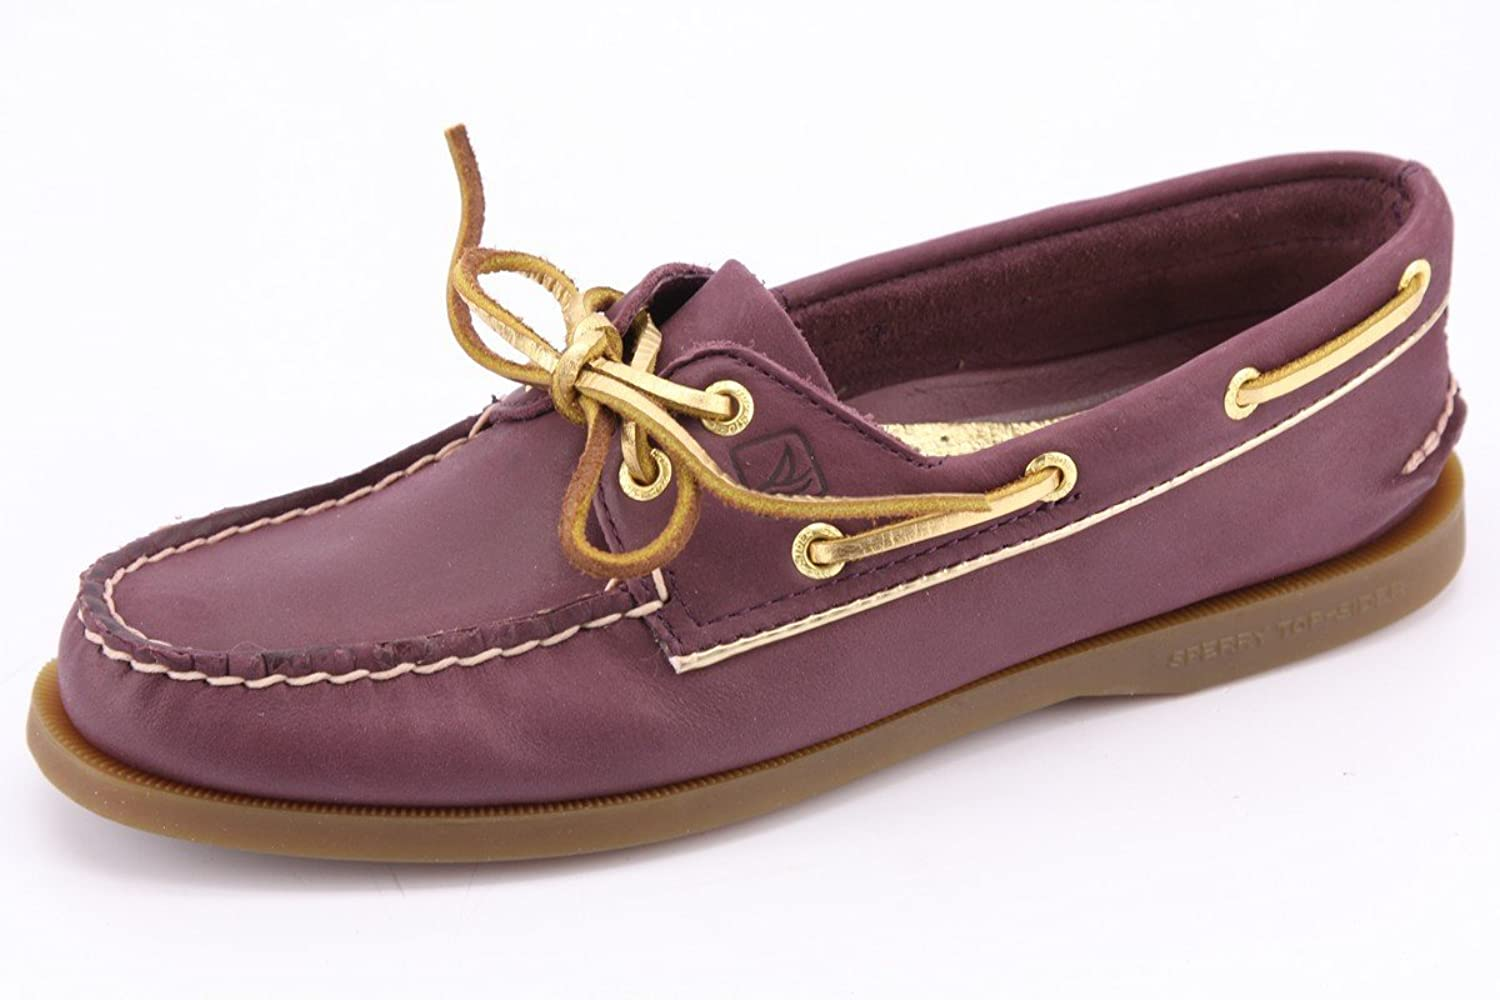 Sperry Top-Sider Women's A/O Black/Gold Piping Boat Shoe